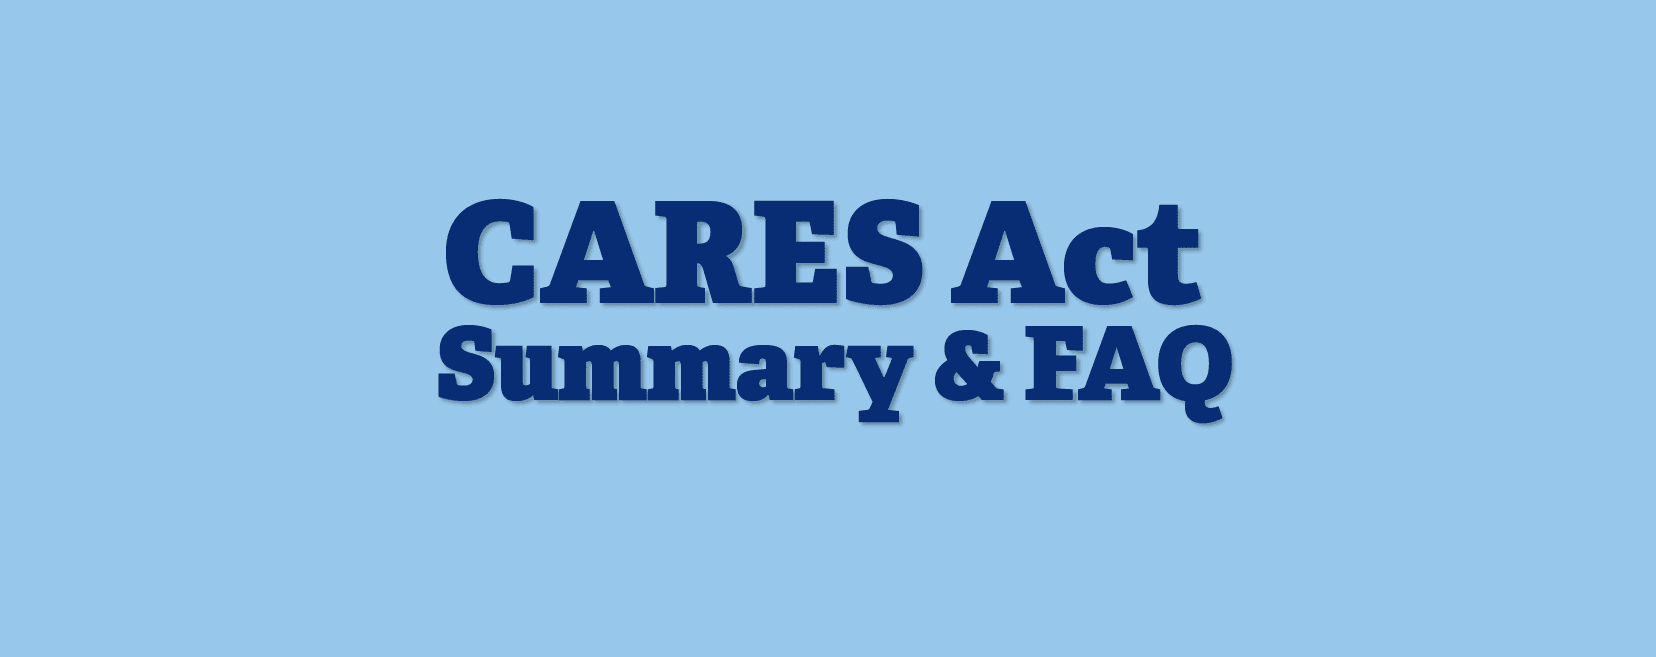 CARES Act Summary & FAQ